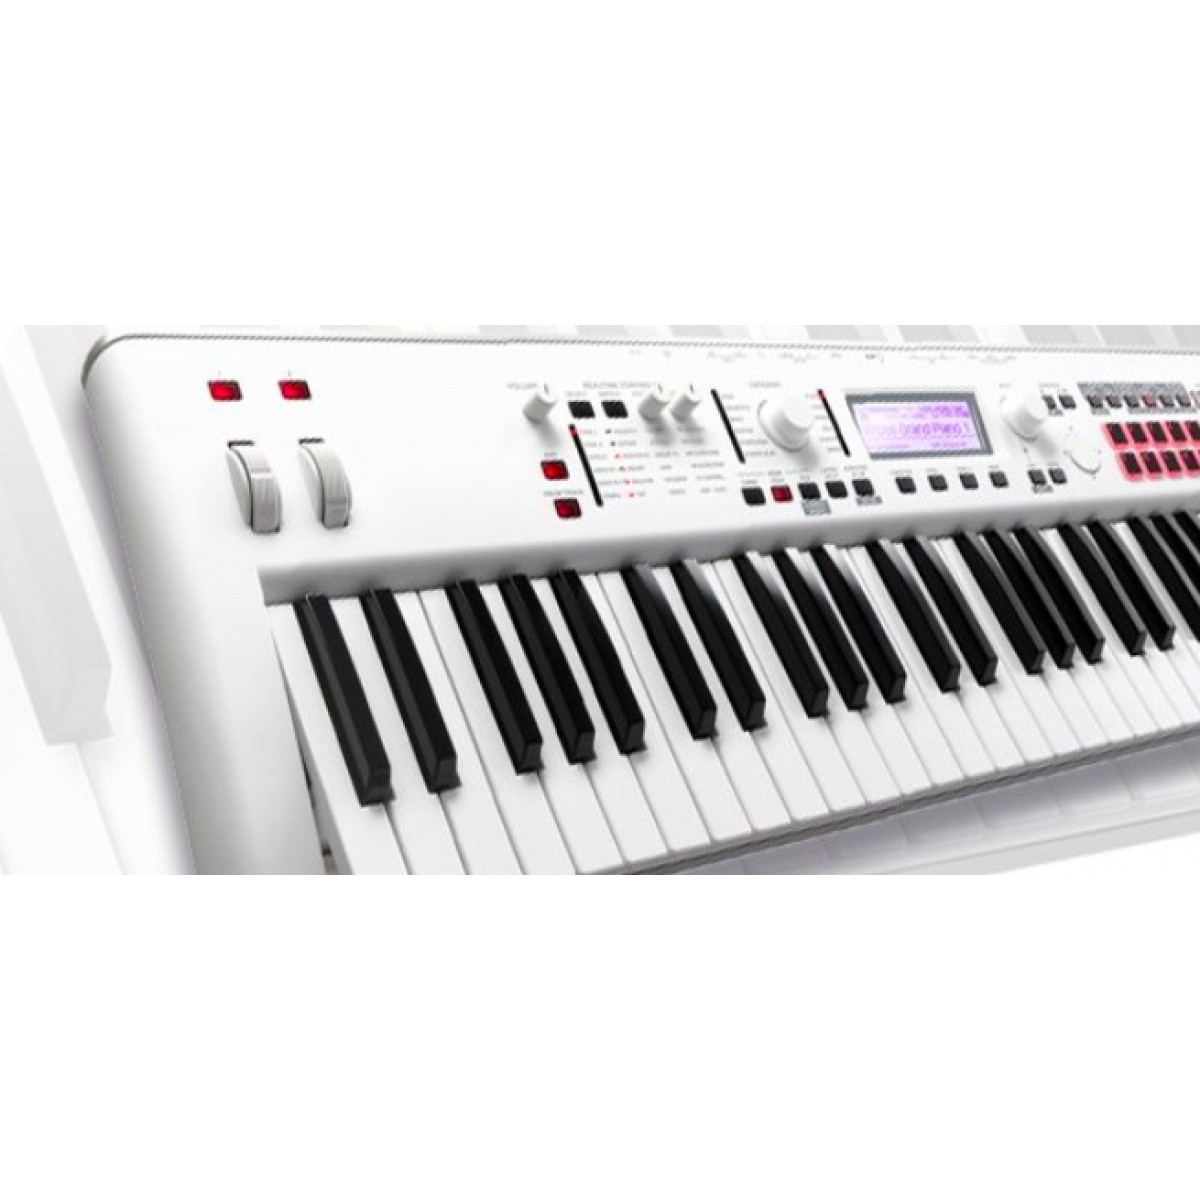 korg kross2 white 61 key synthesizer workstation limited edition synthesizers keyboards. Black Bedroom Furniture Sets. Home Design Ideas